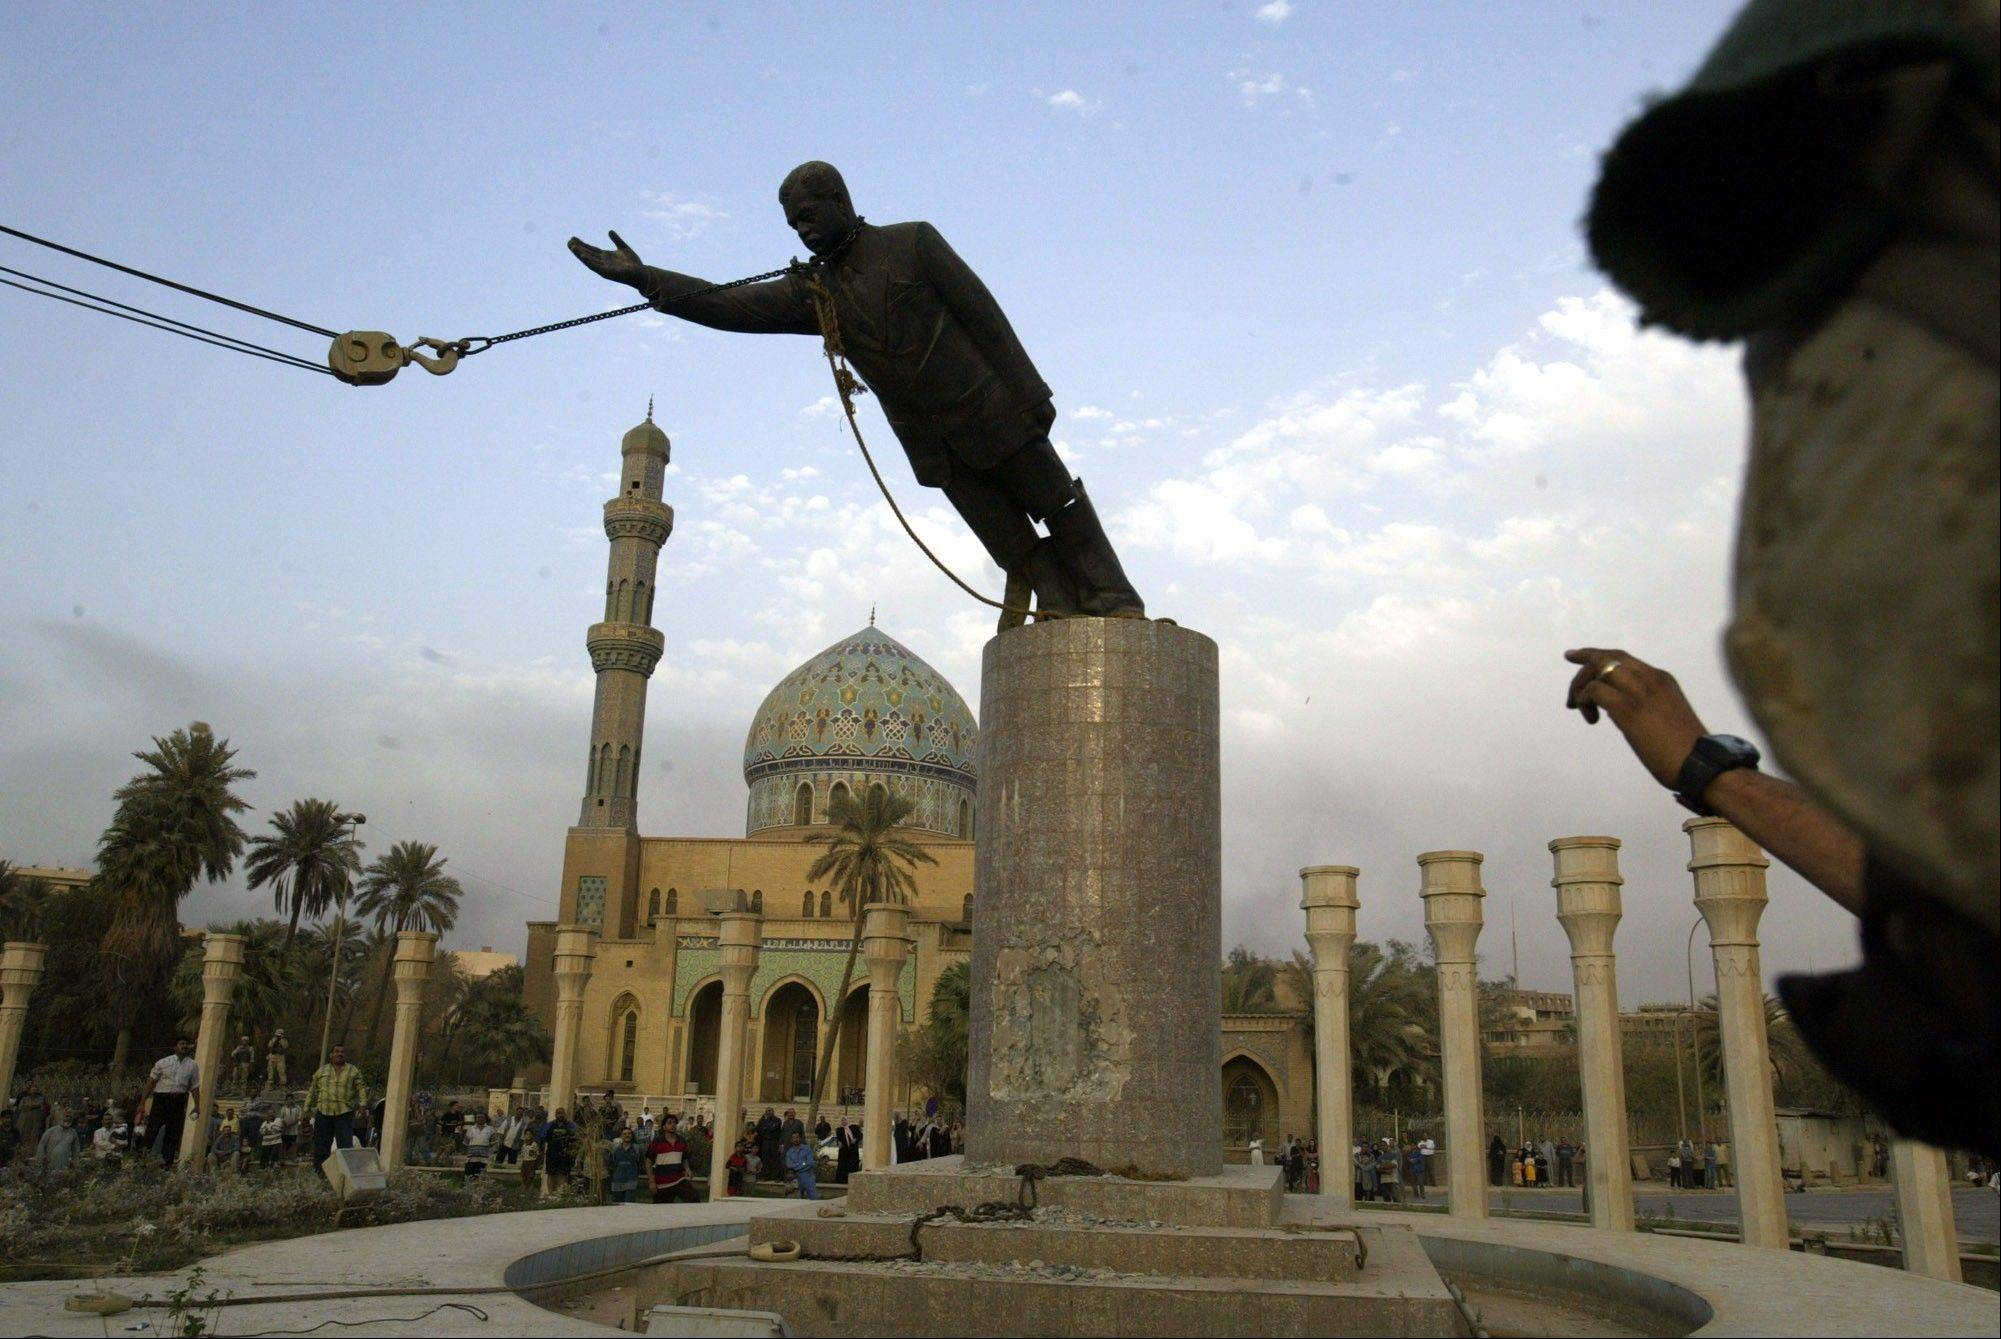 FILE - A U.S. Marine watches a statue of Saddam Hussein being toppled in Firdaus Square in downtown Baghdad on April 9, 2003 file photo.